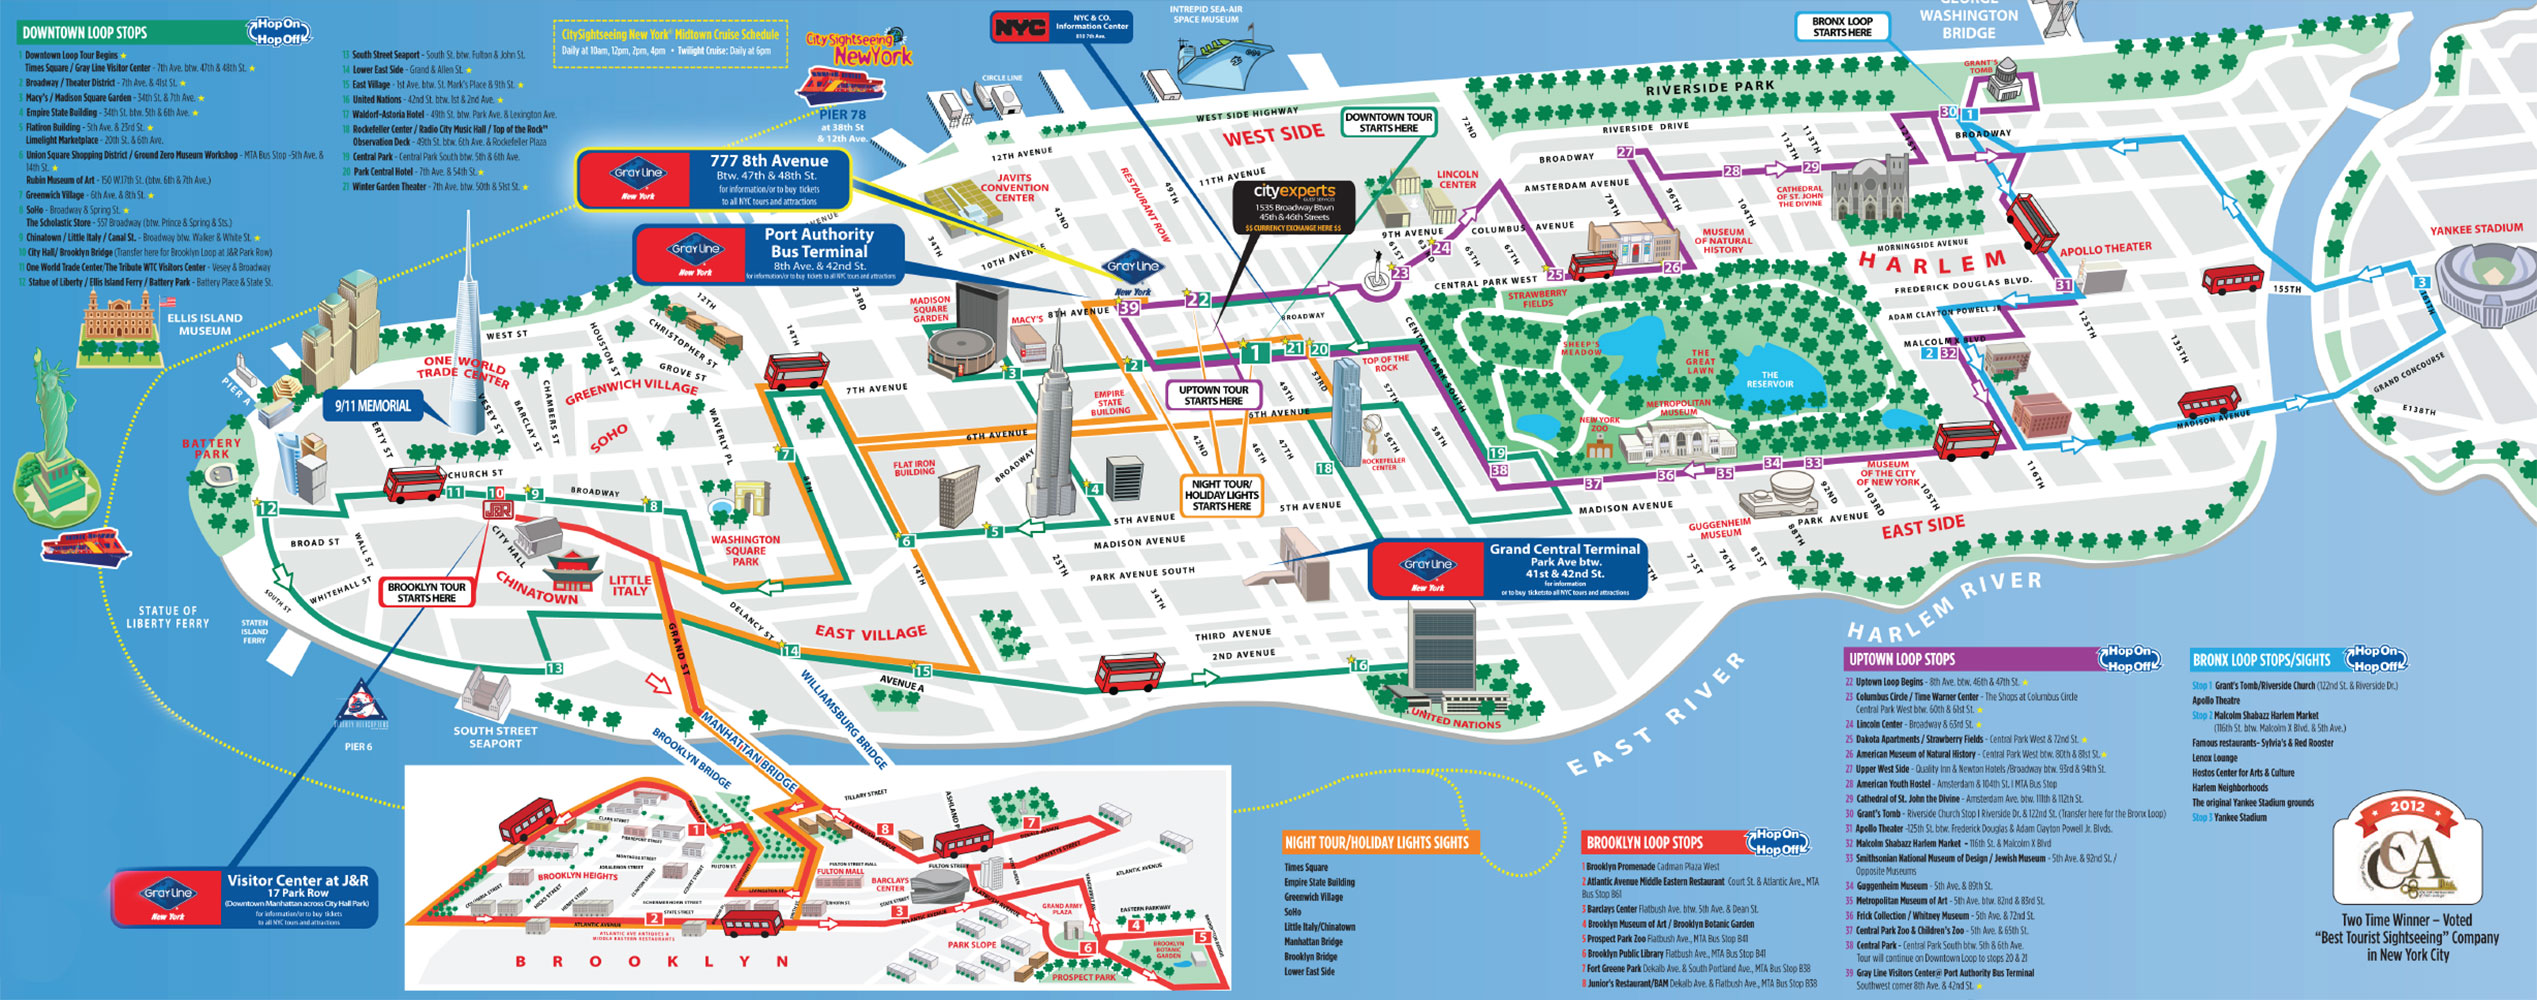 Tourist Attractions In New York Map New York Tourist Attractions – New York City Tourist Map PDF